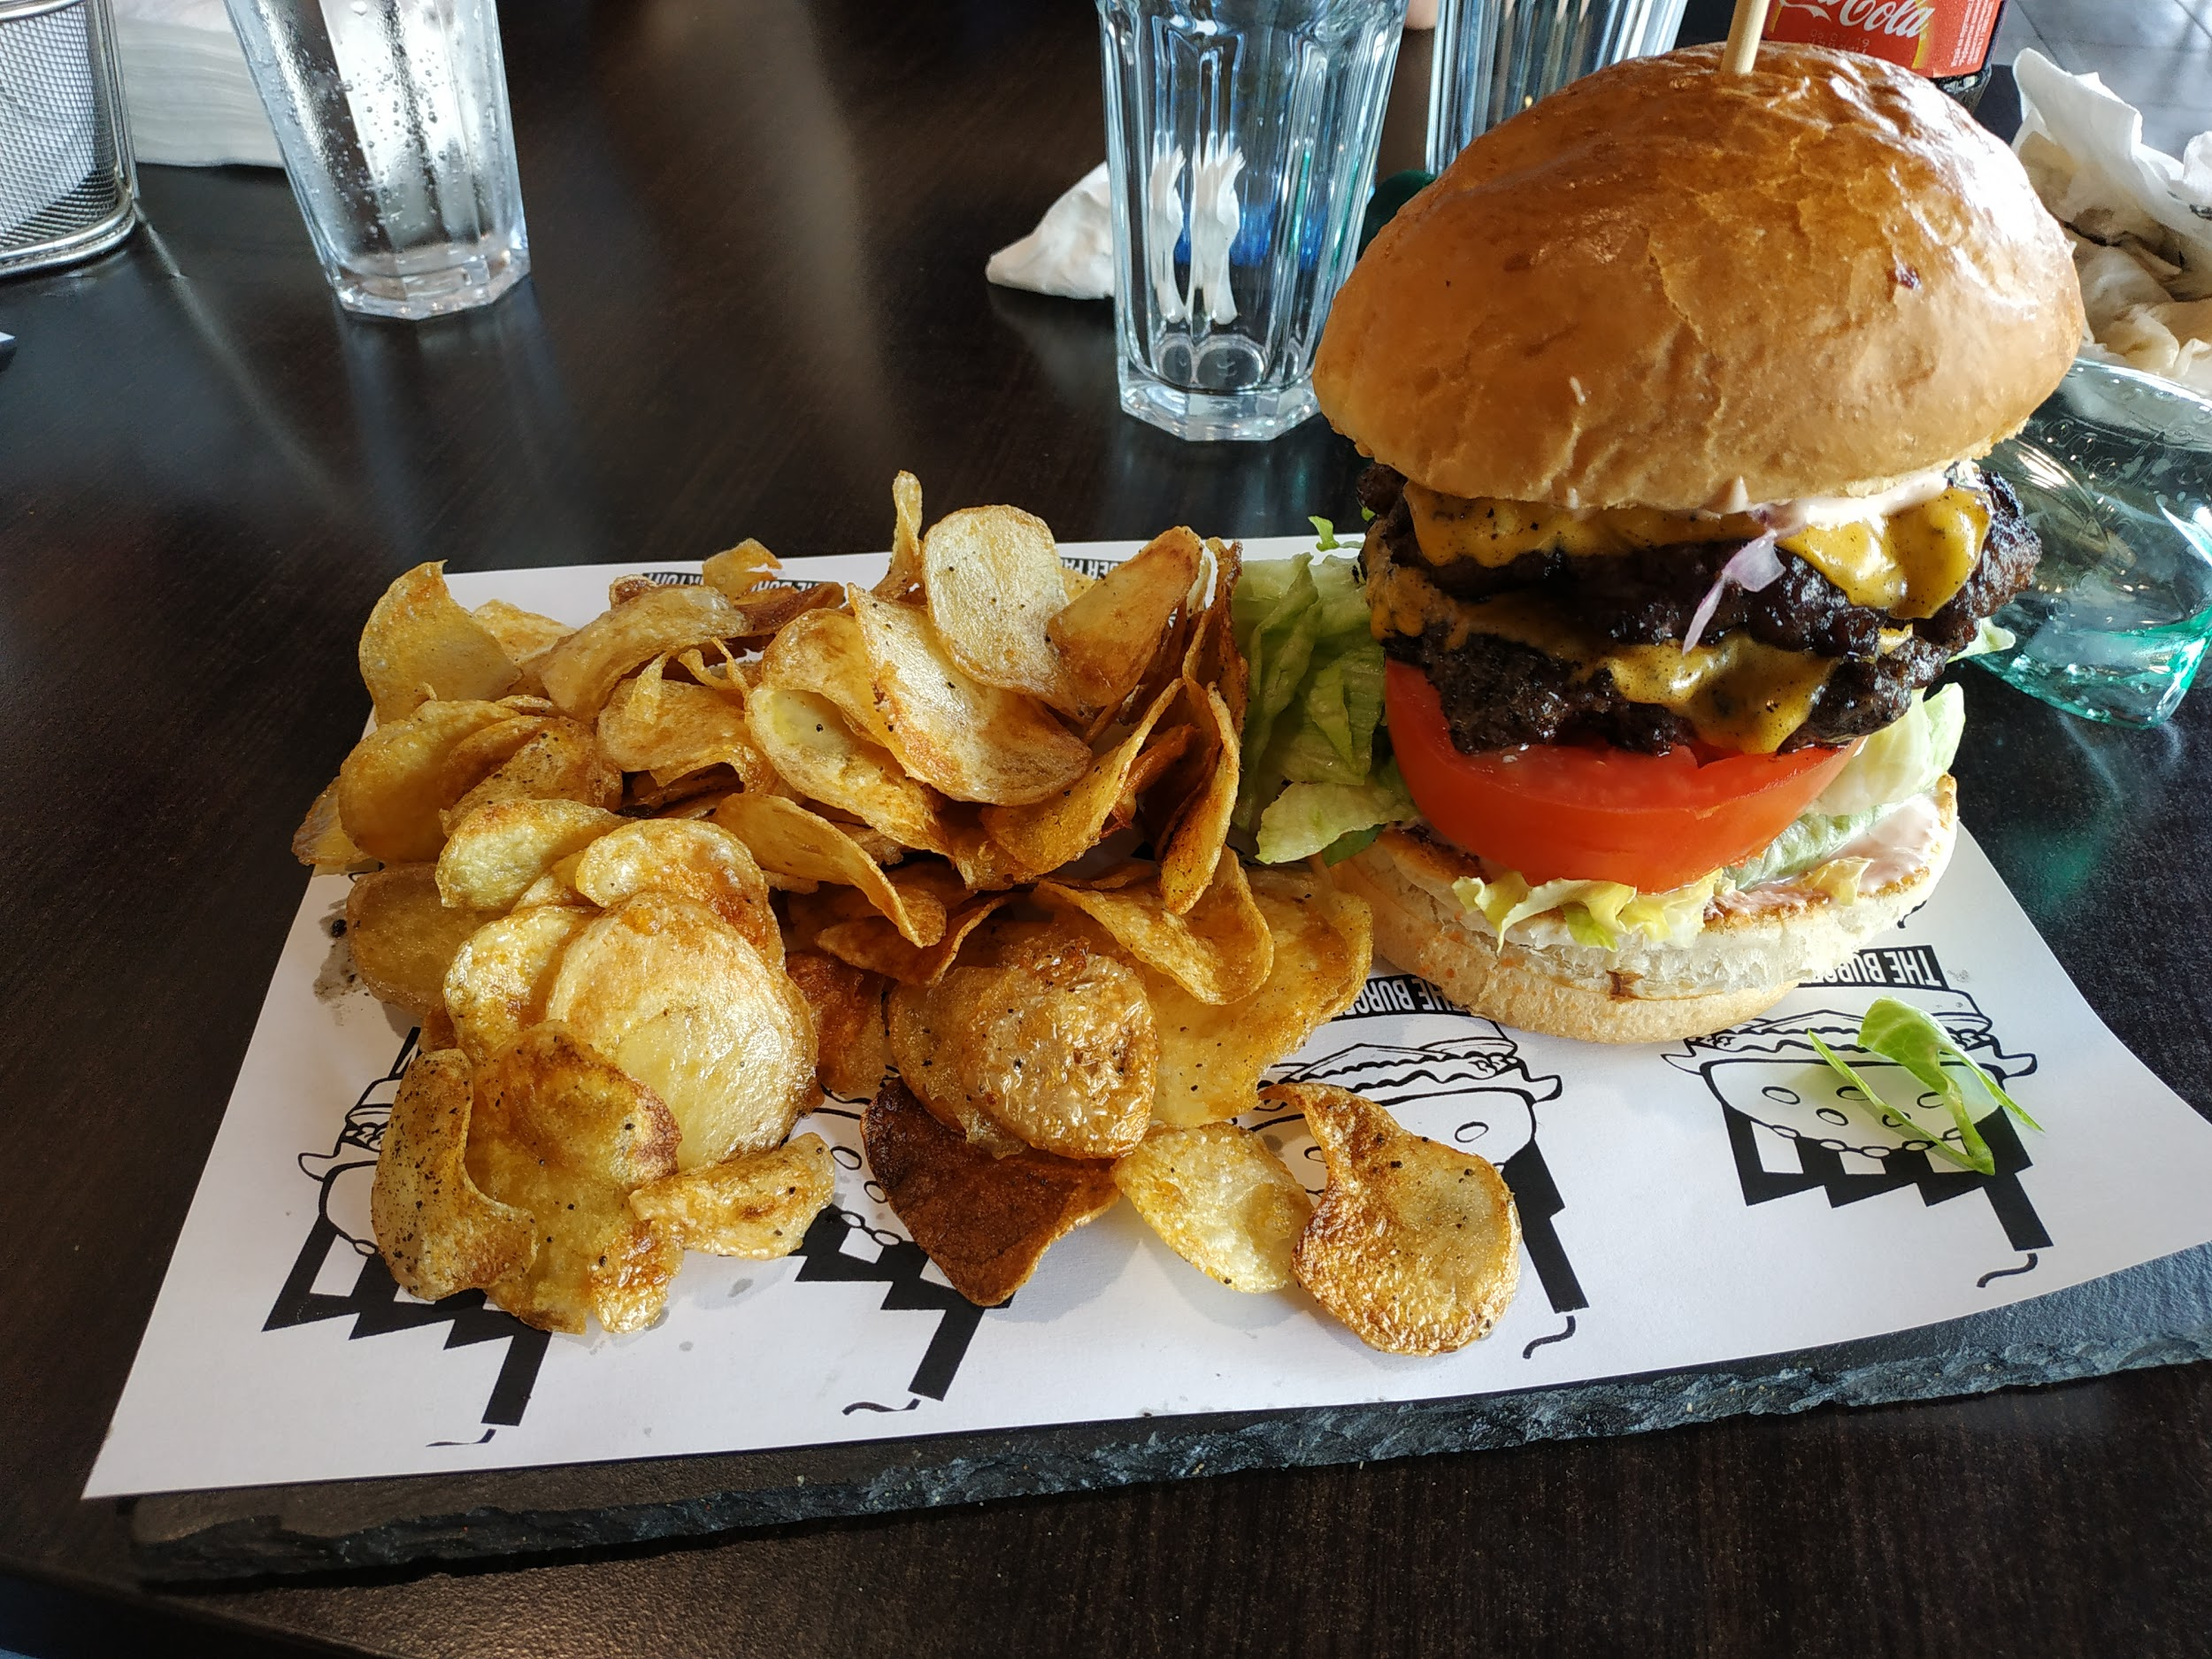 Burger and chips at a burger place in Sofia